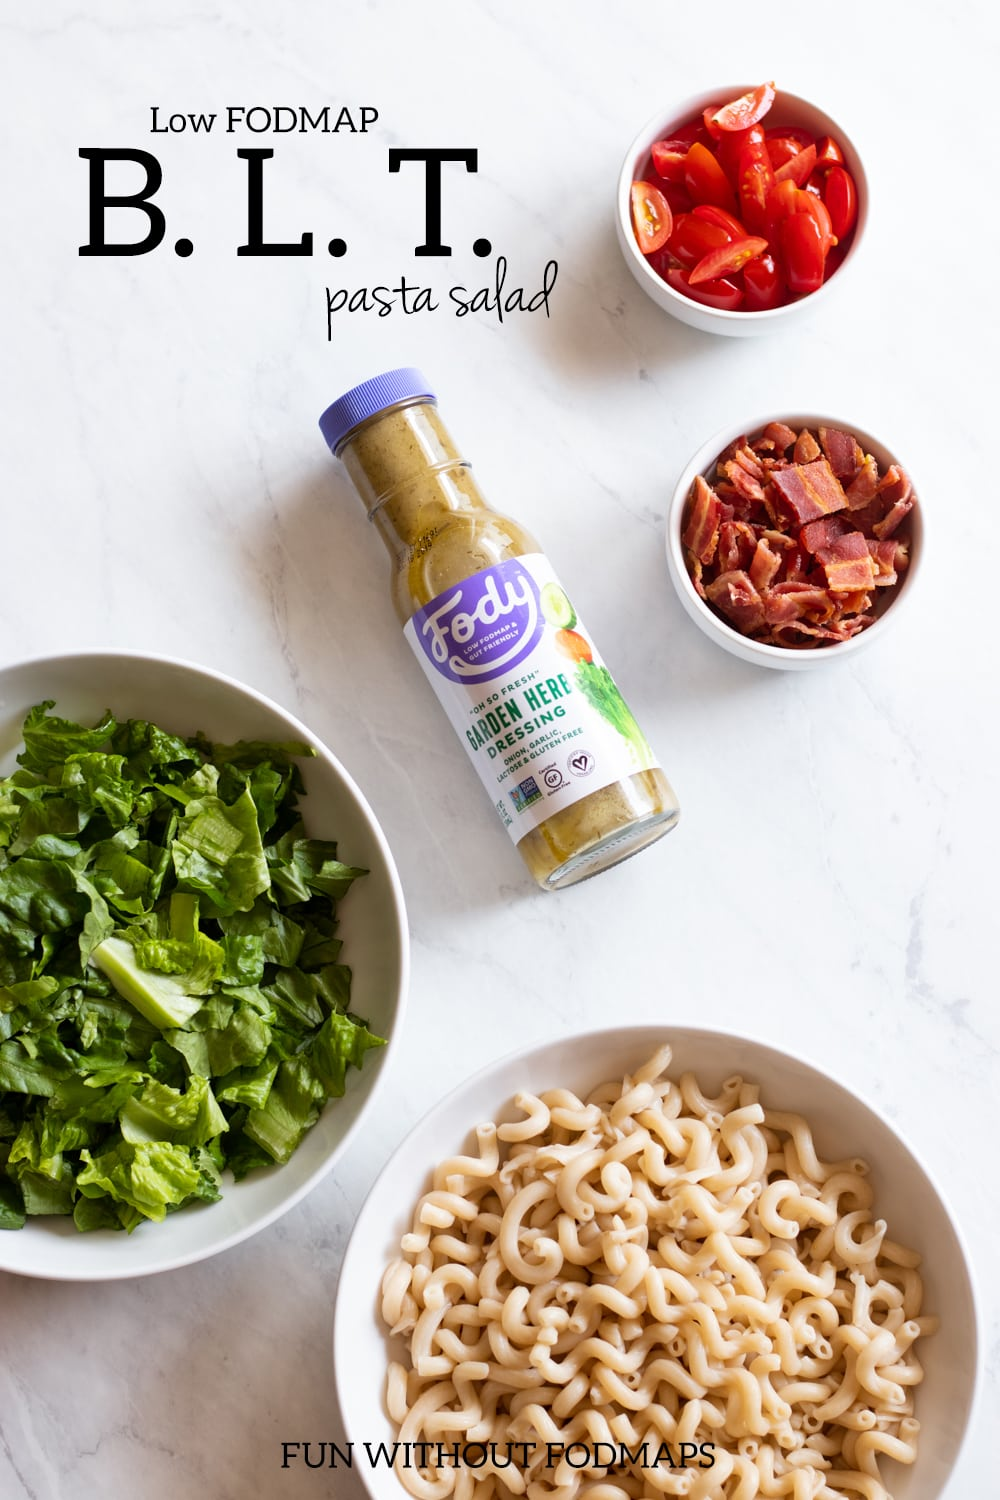 Ingredients needed to make low FODMAP BLT pasta salad